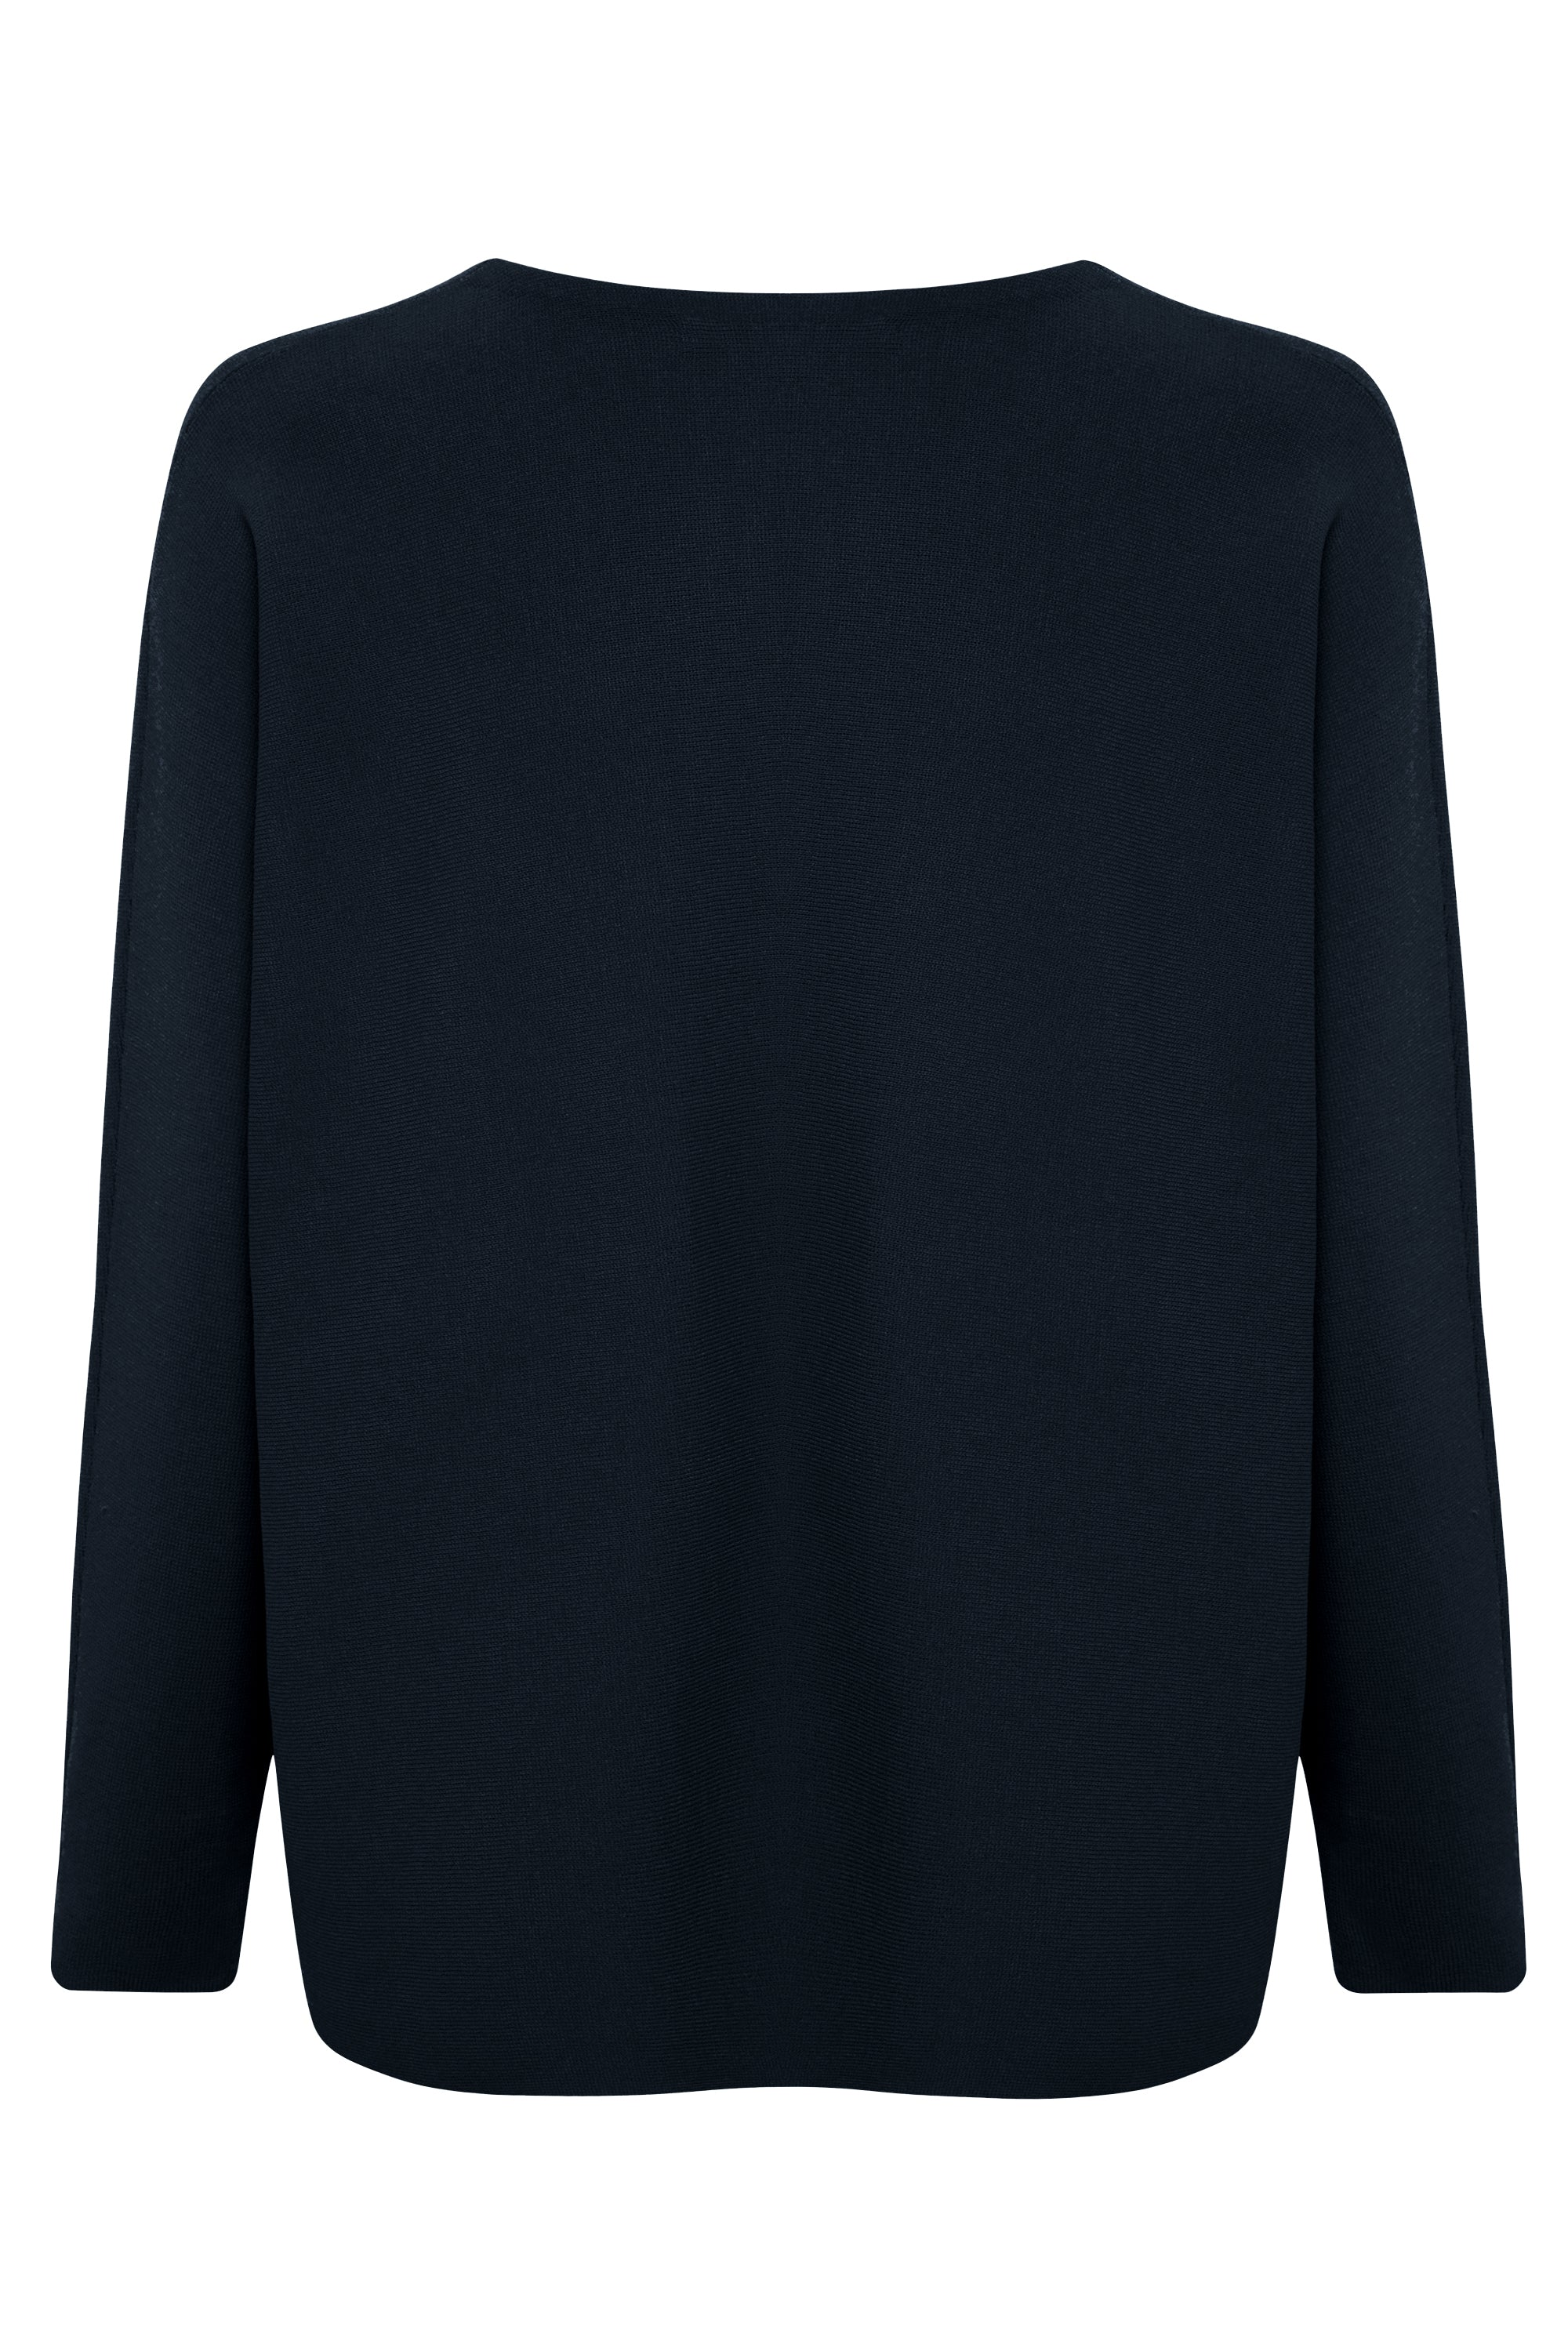 Milla Jumper In Navy